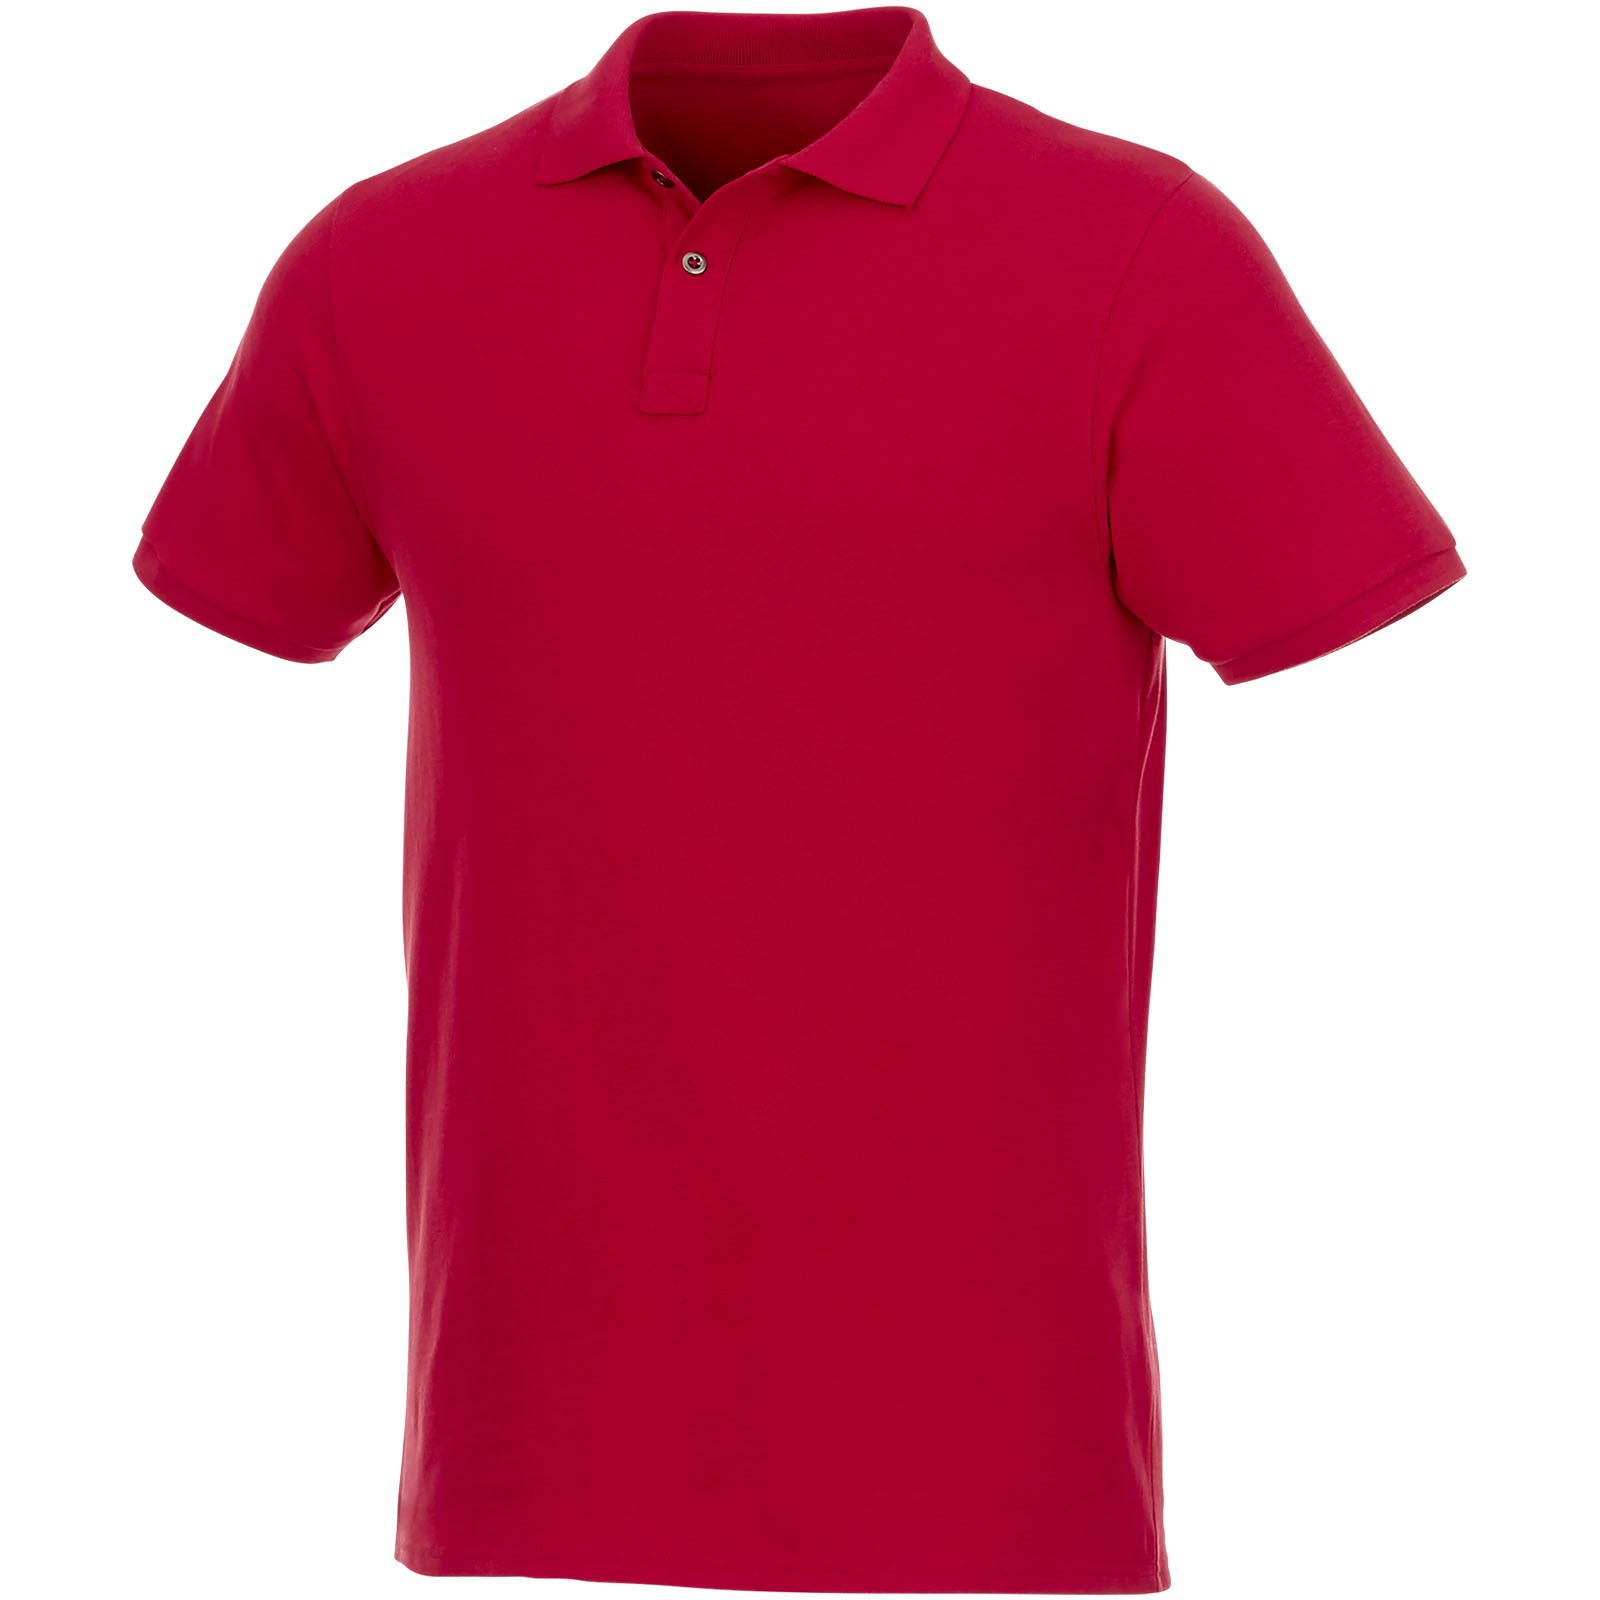 Beryl short sleeve men's GOTS organic GRS recycled polo - Red / S